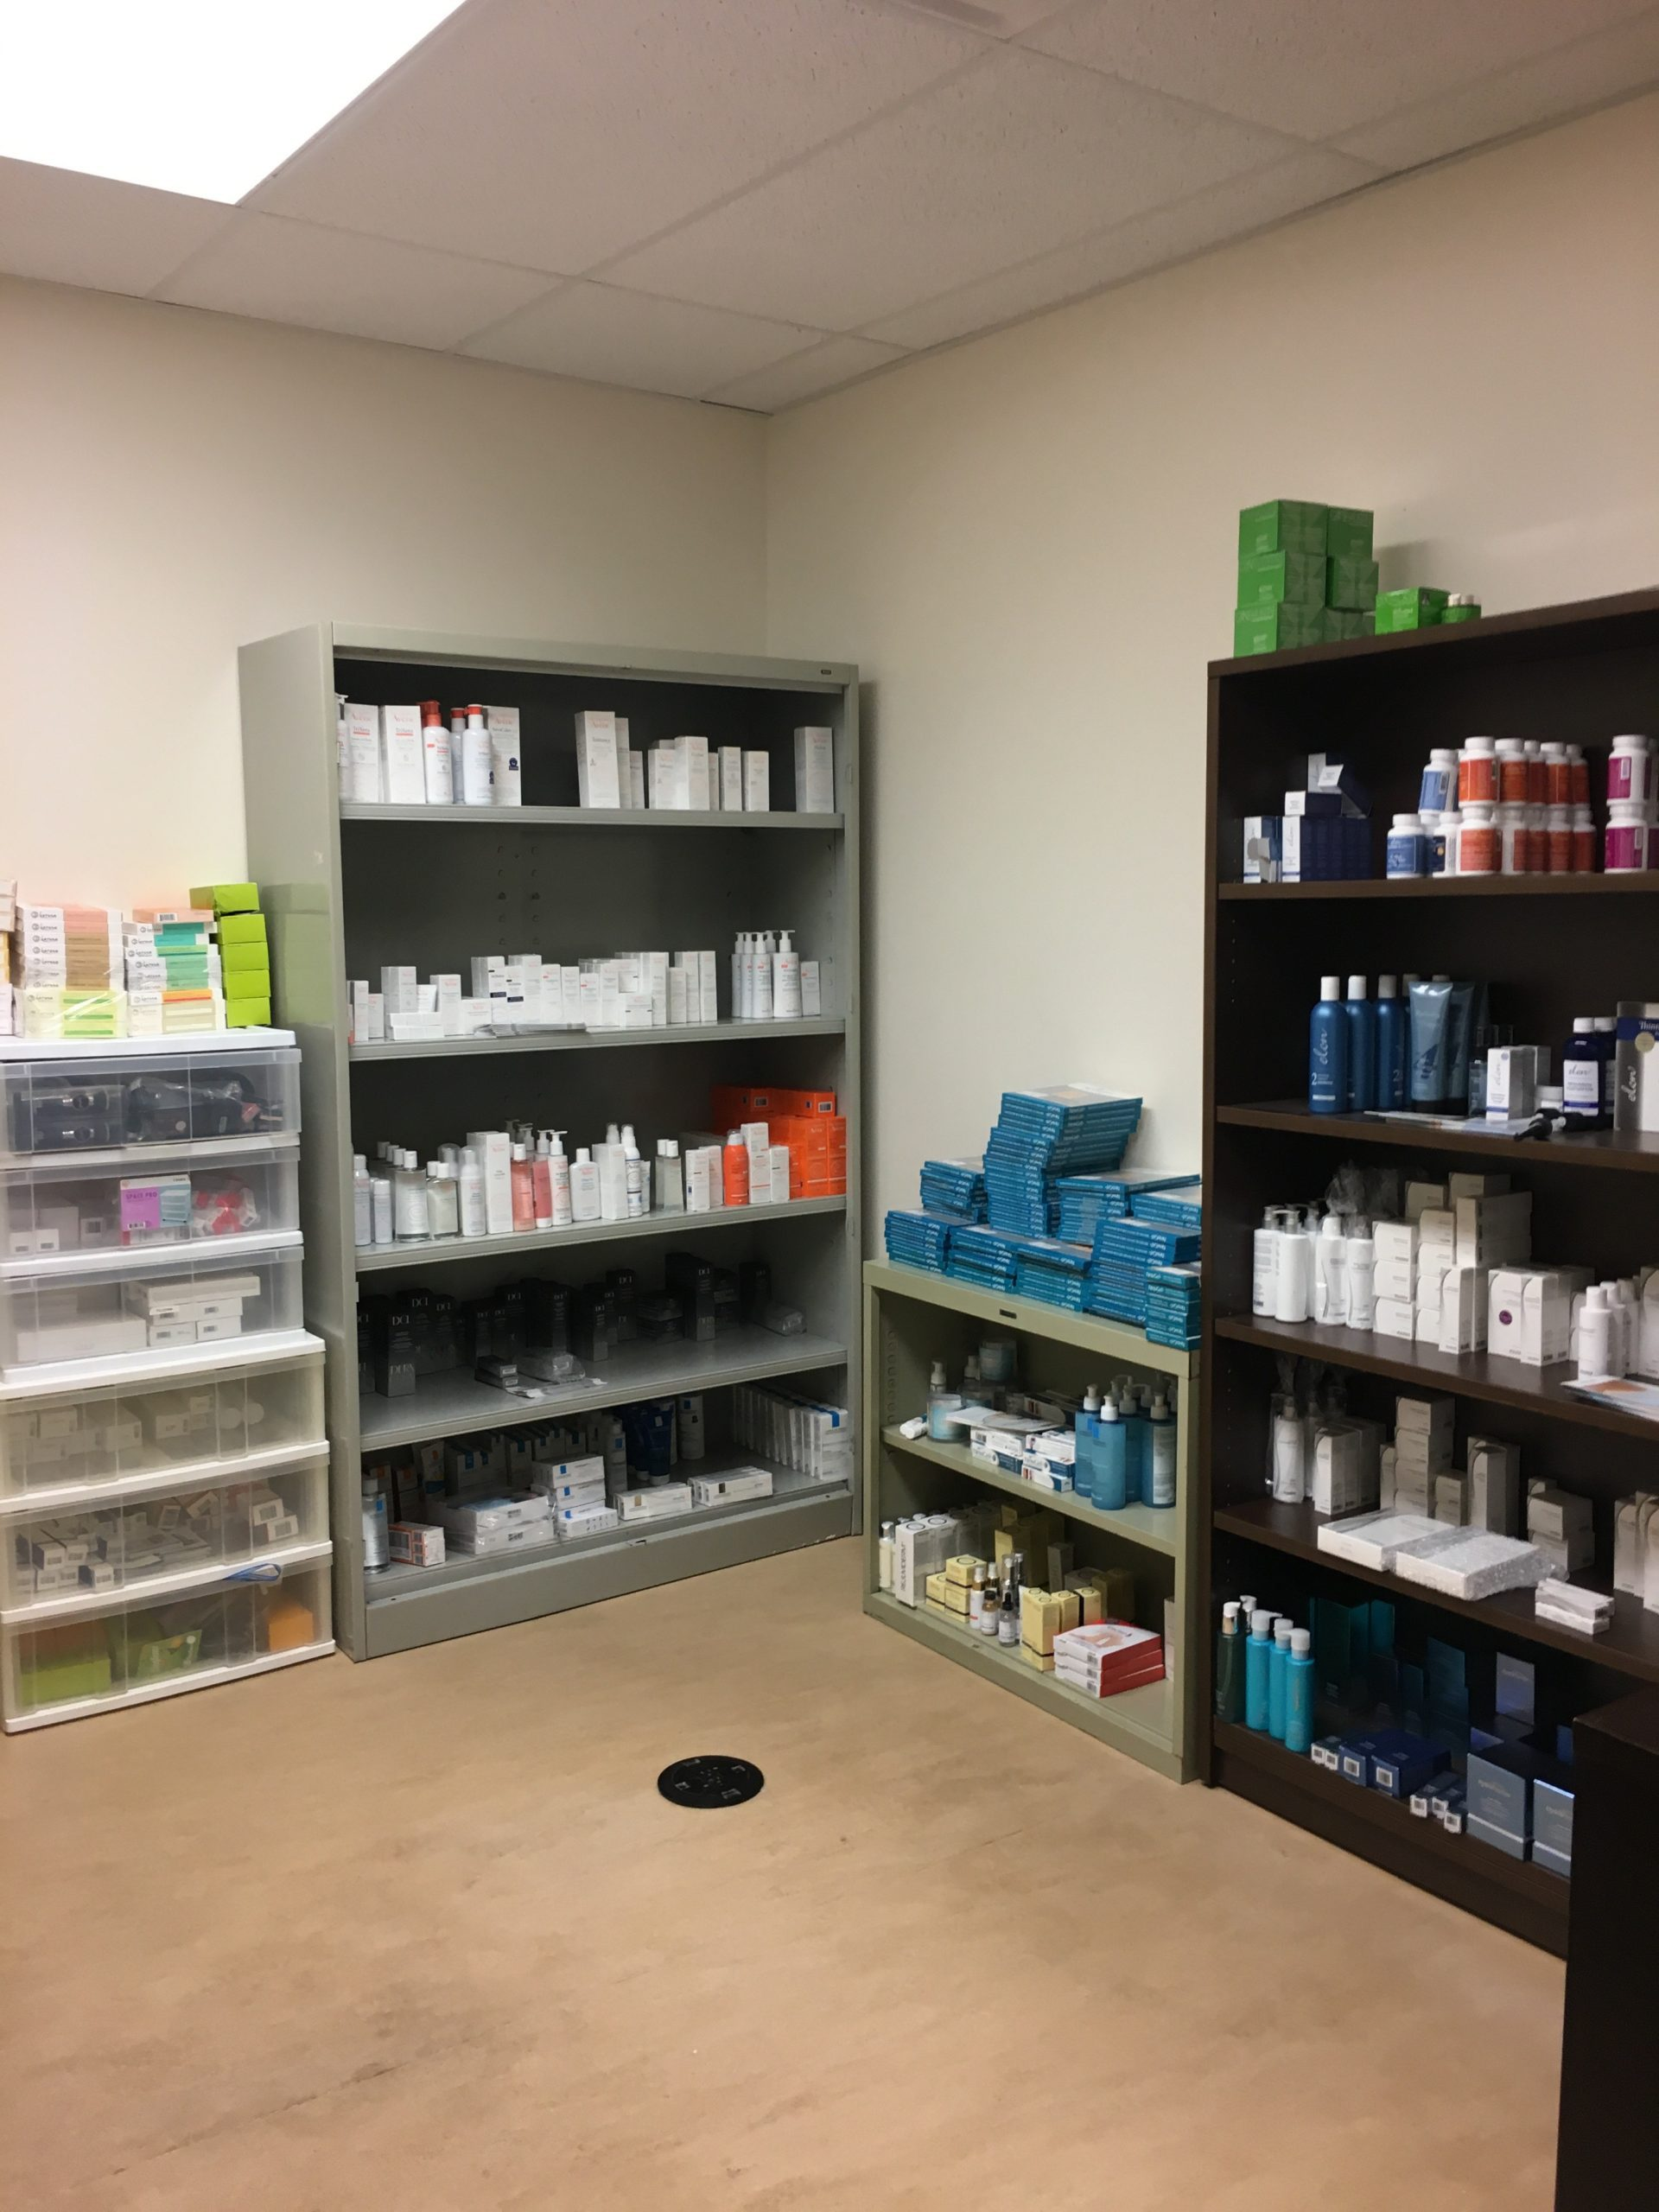 Our first inventory room at DermWarehouse